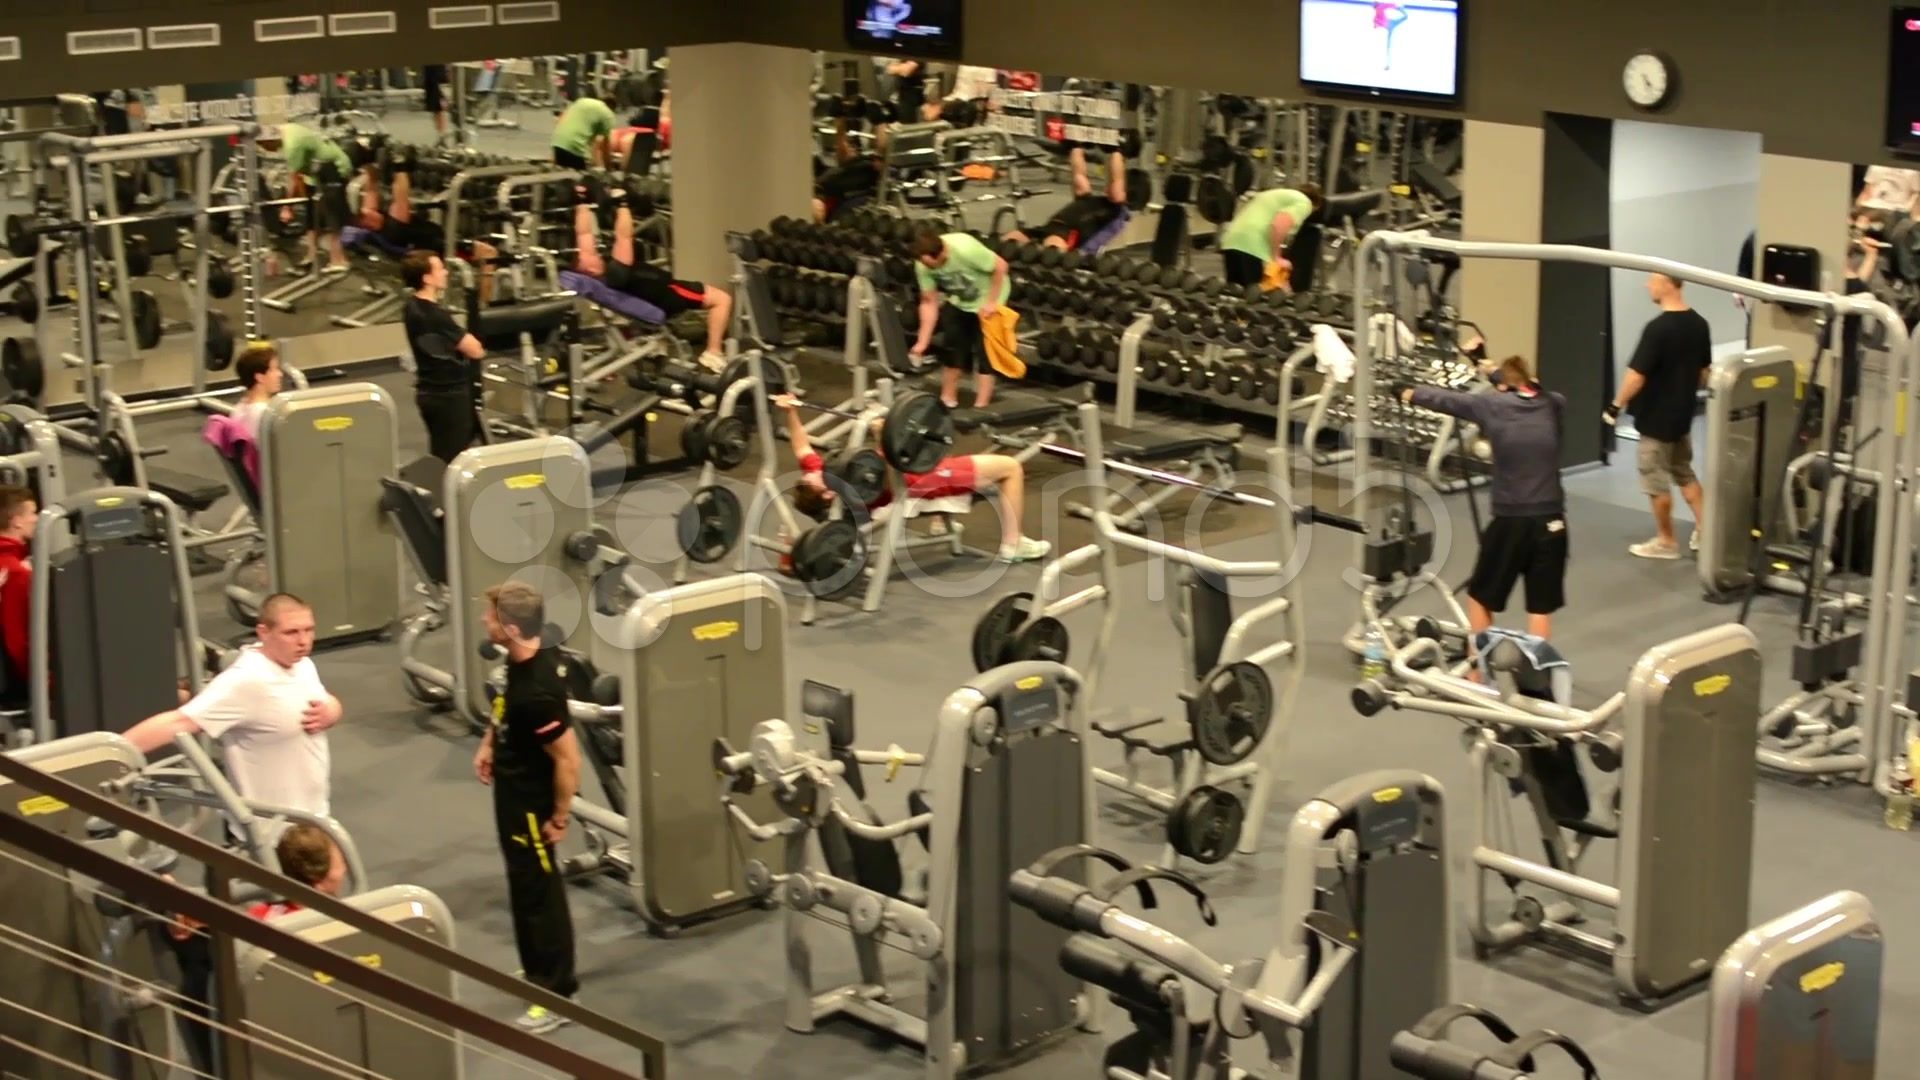 People Train In Fitness Gym Workout Stock Footage Fitness Train People Gym Gym Workout Fitness